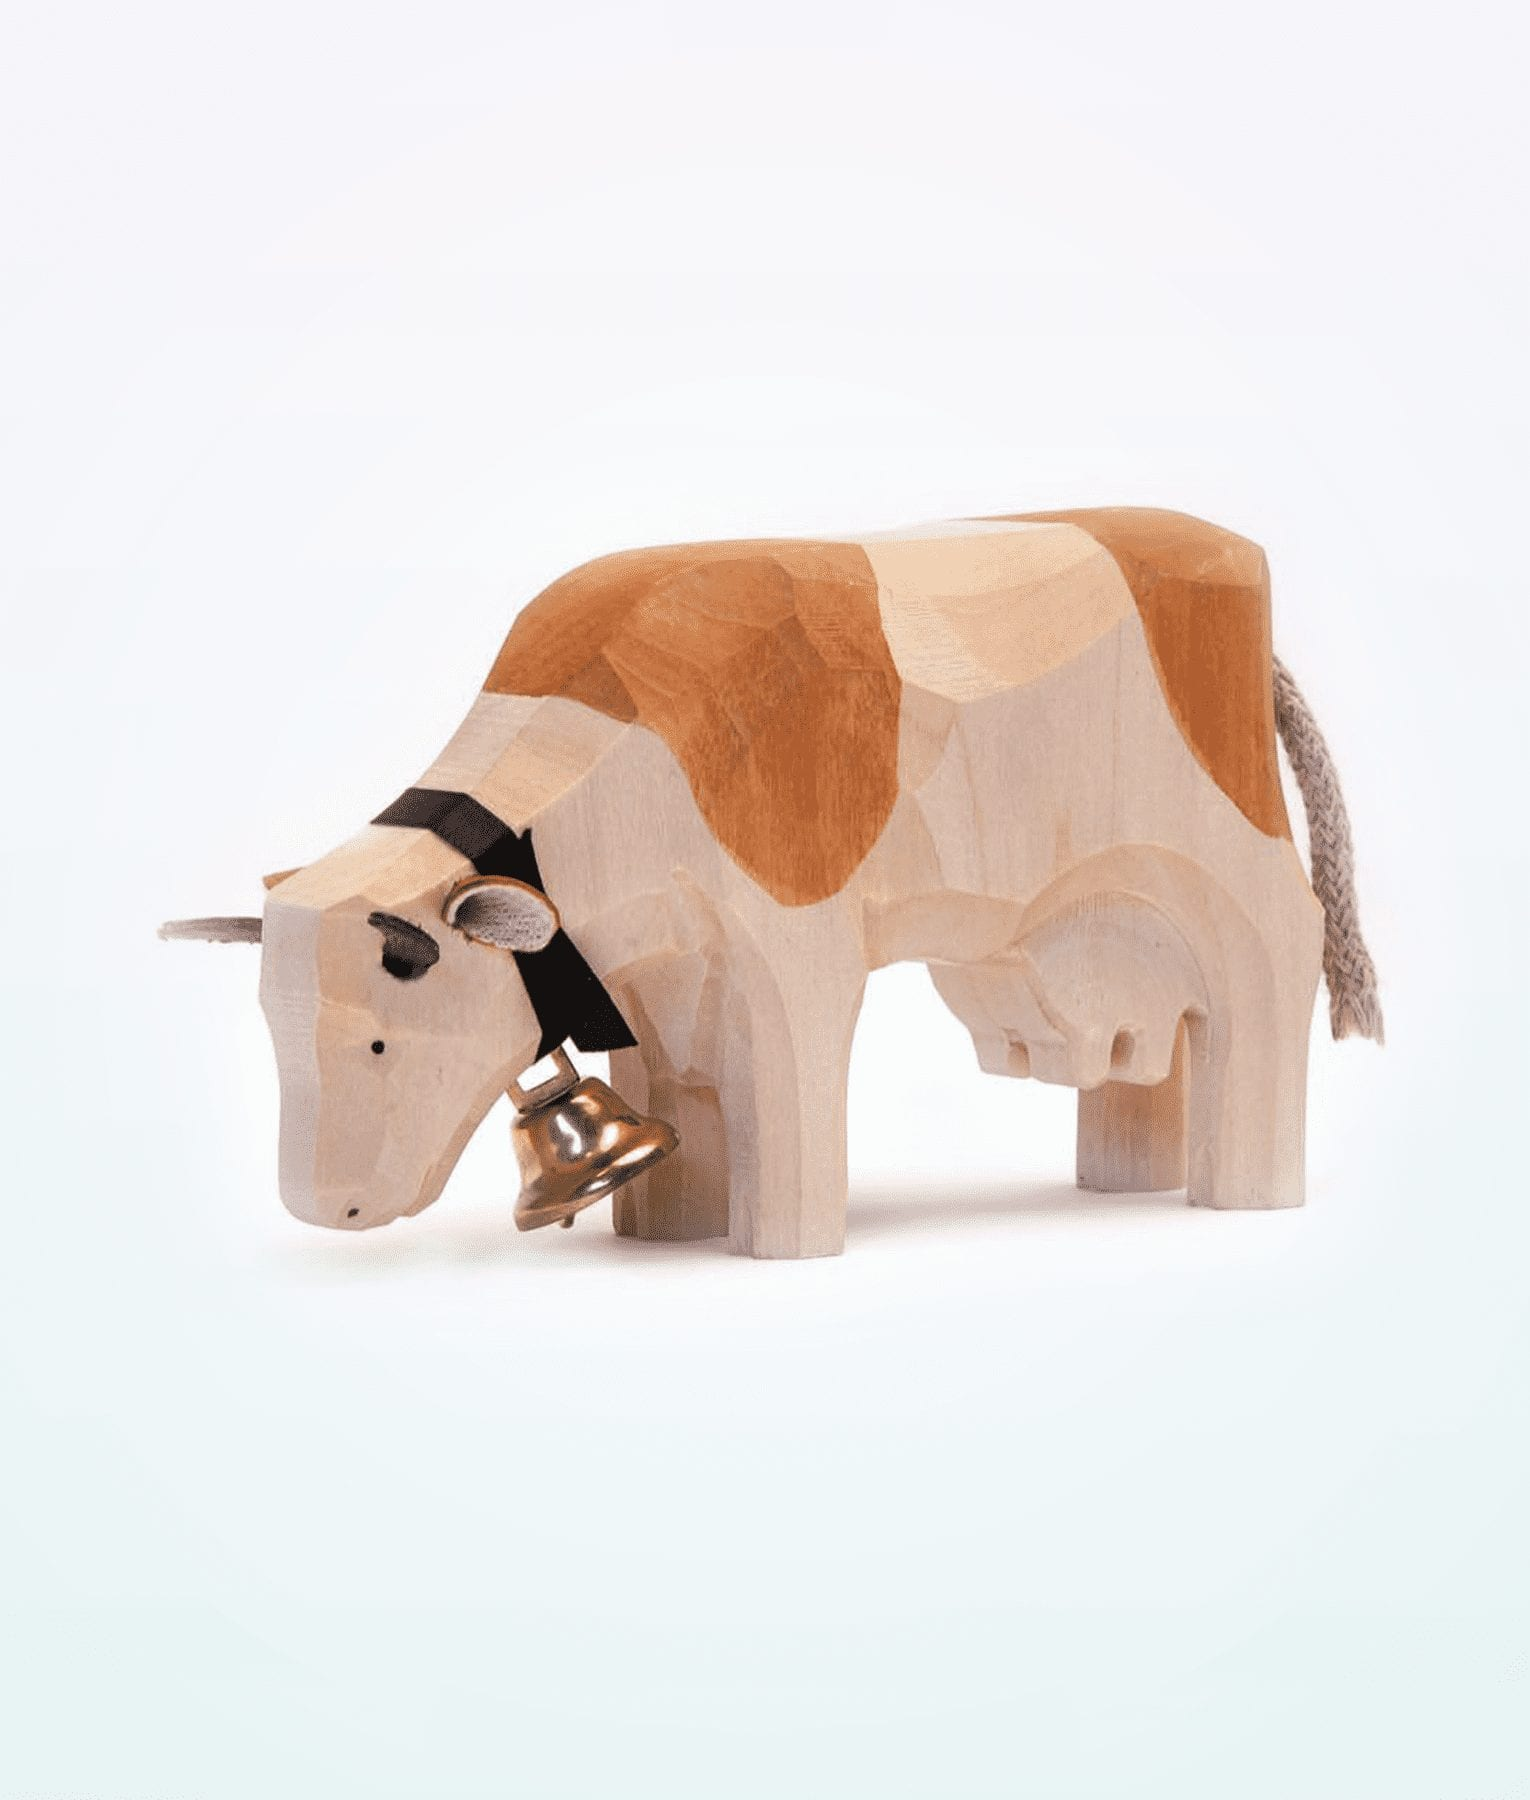 trauffer-bois-vache-edition-1938